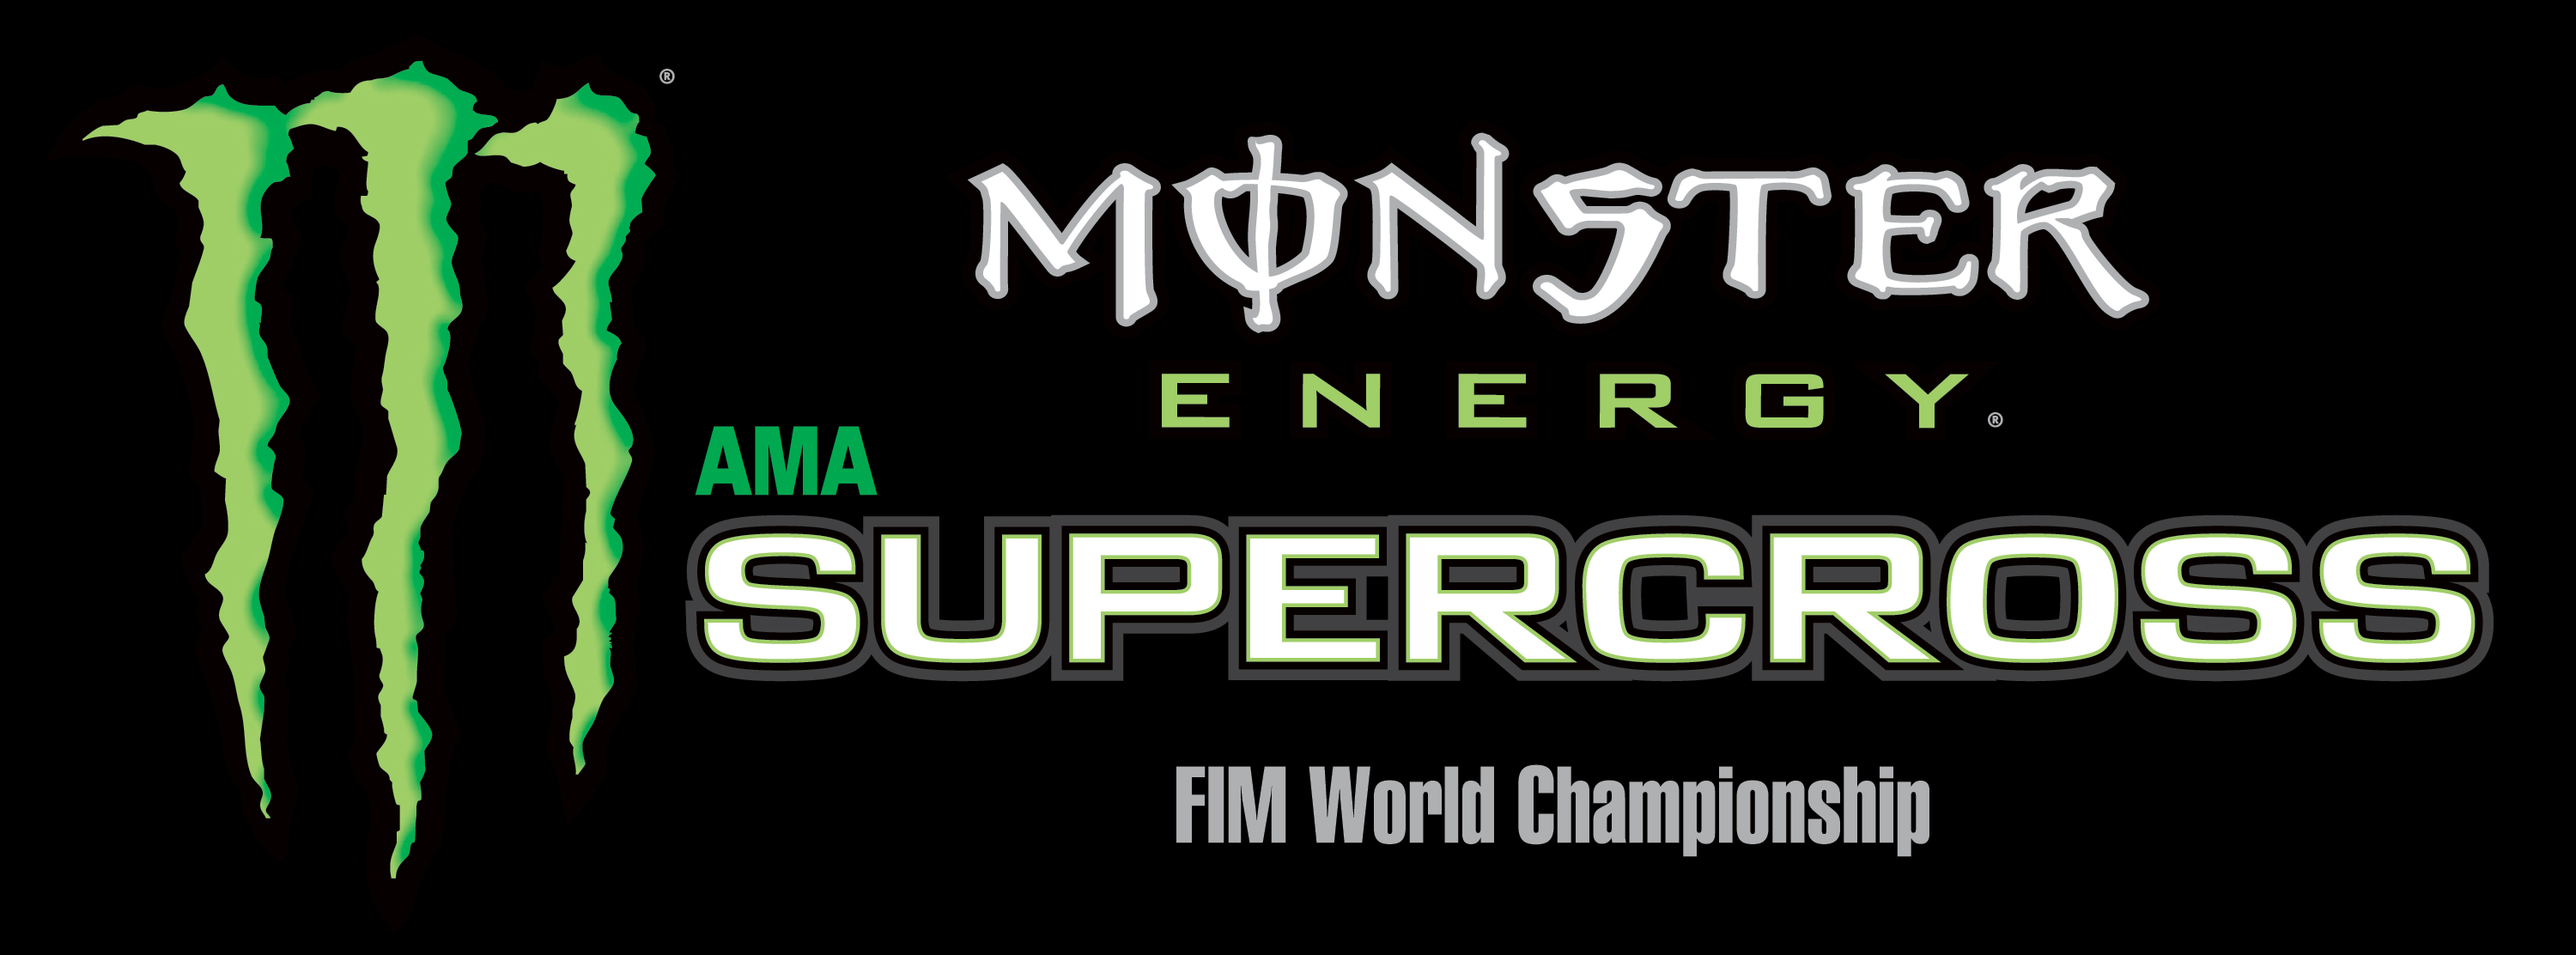 Ama Supercross Logo PNG - 98760